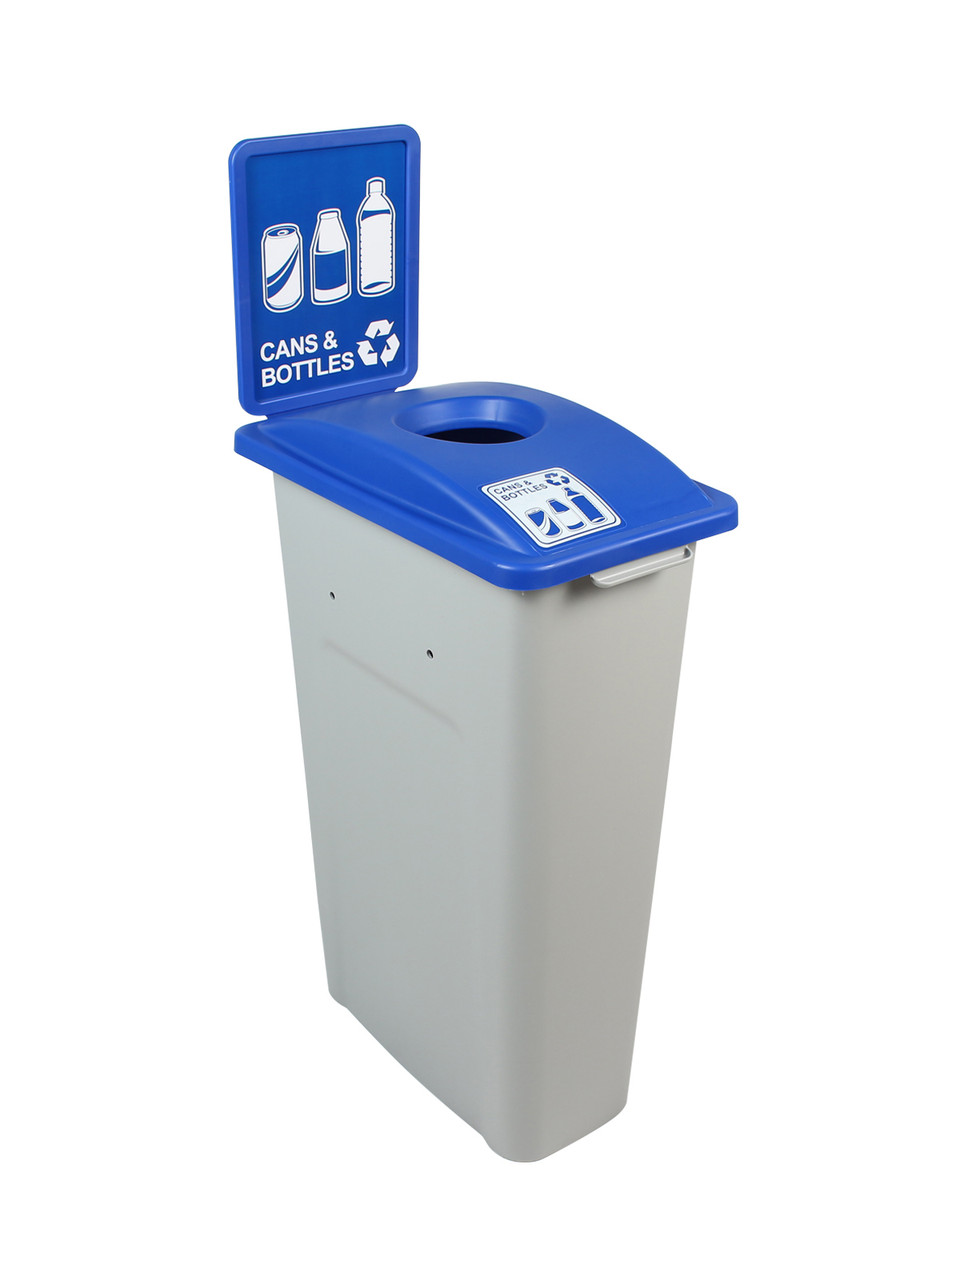 23 Gallon Skinny Simple Sort Recycle Bin with Sign (Cans & Bottles)